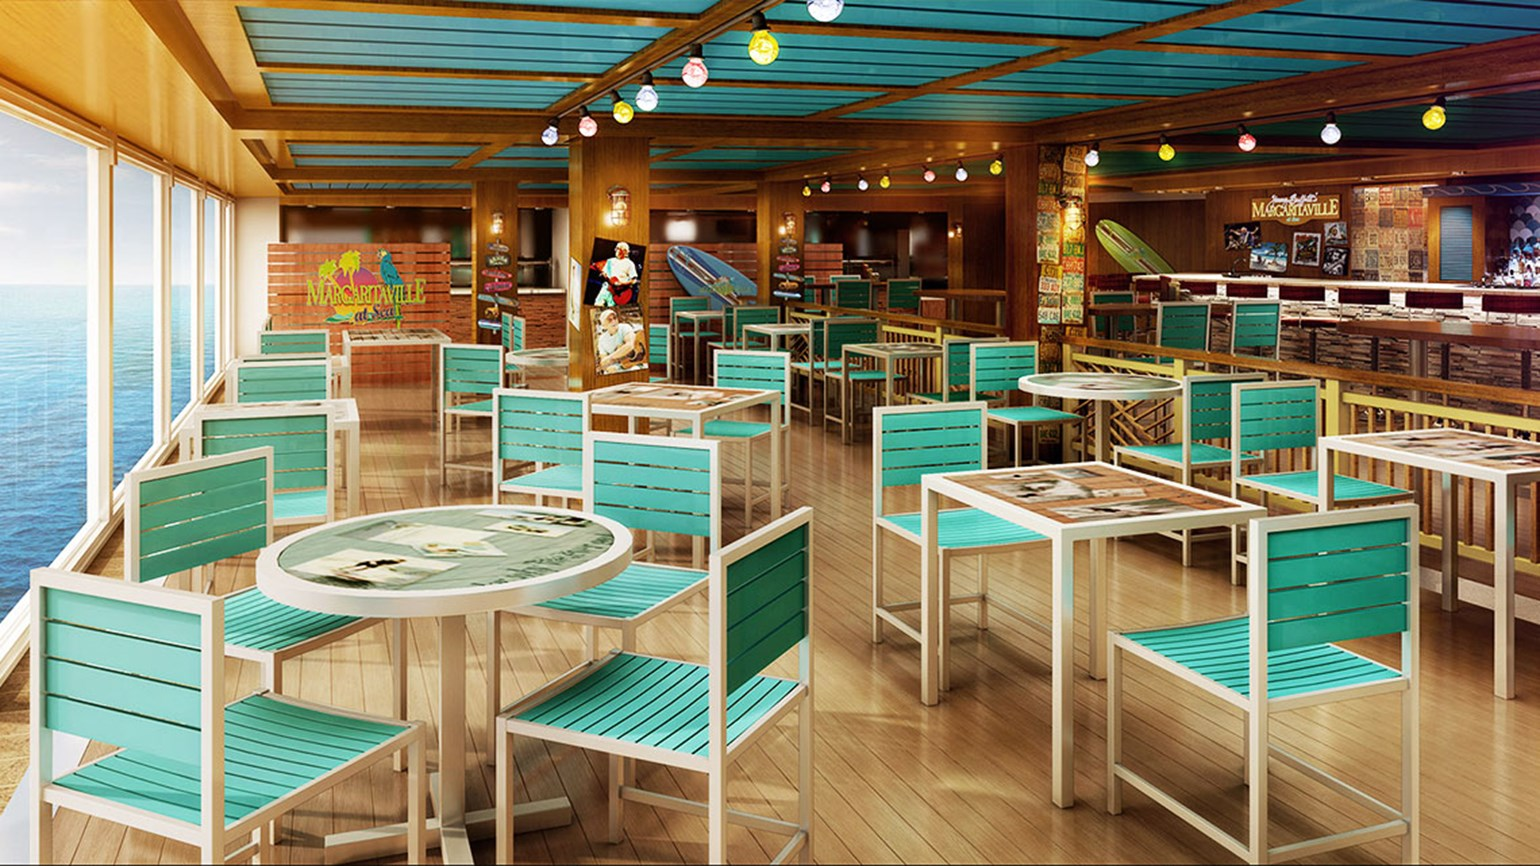 On Norwegian Escape, dining at Margaritaville now costs extra